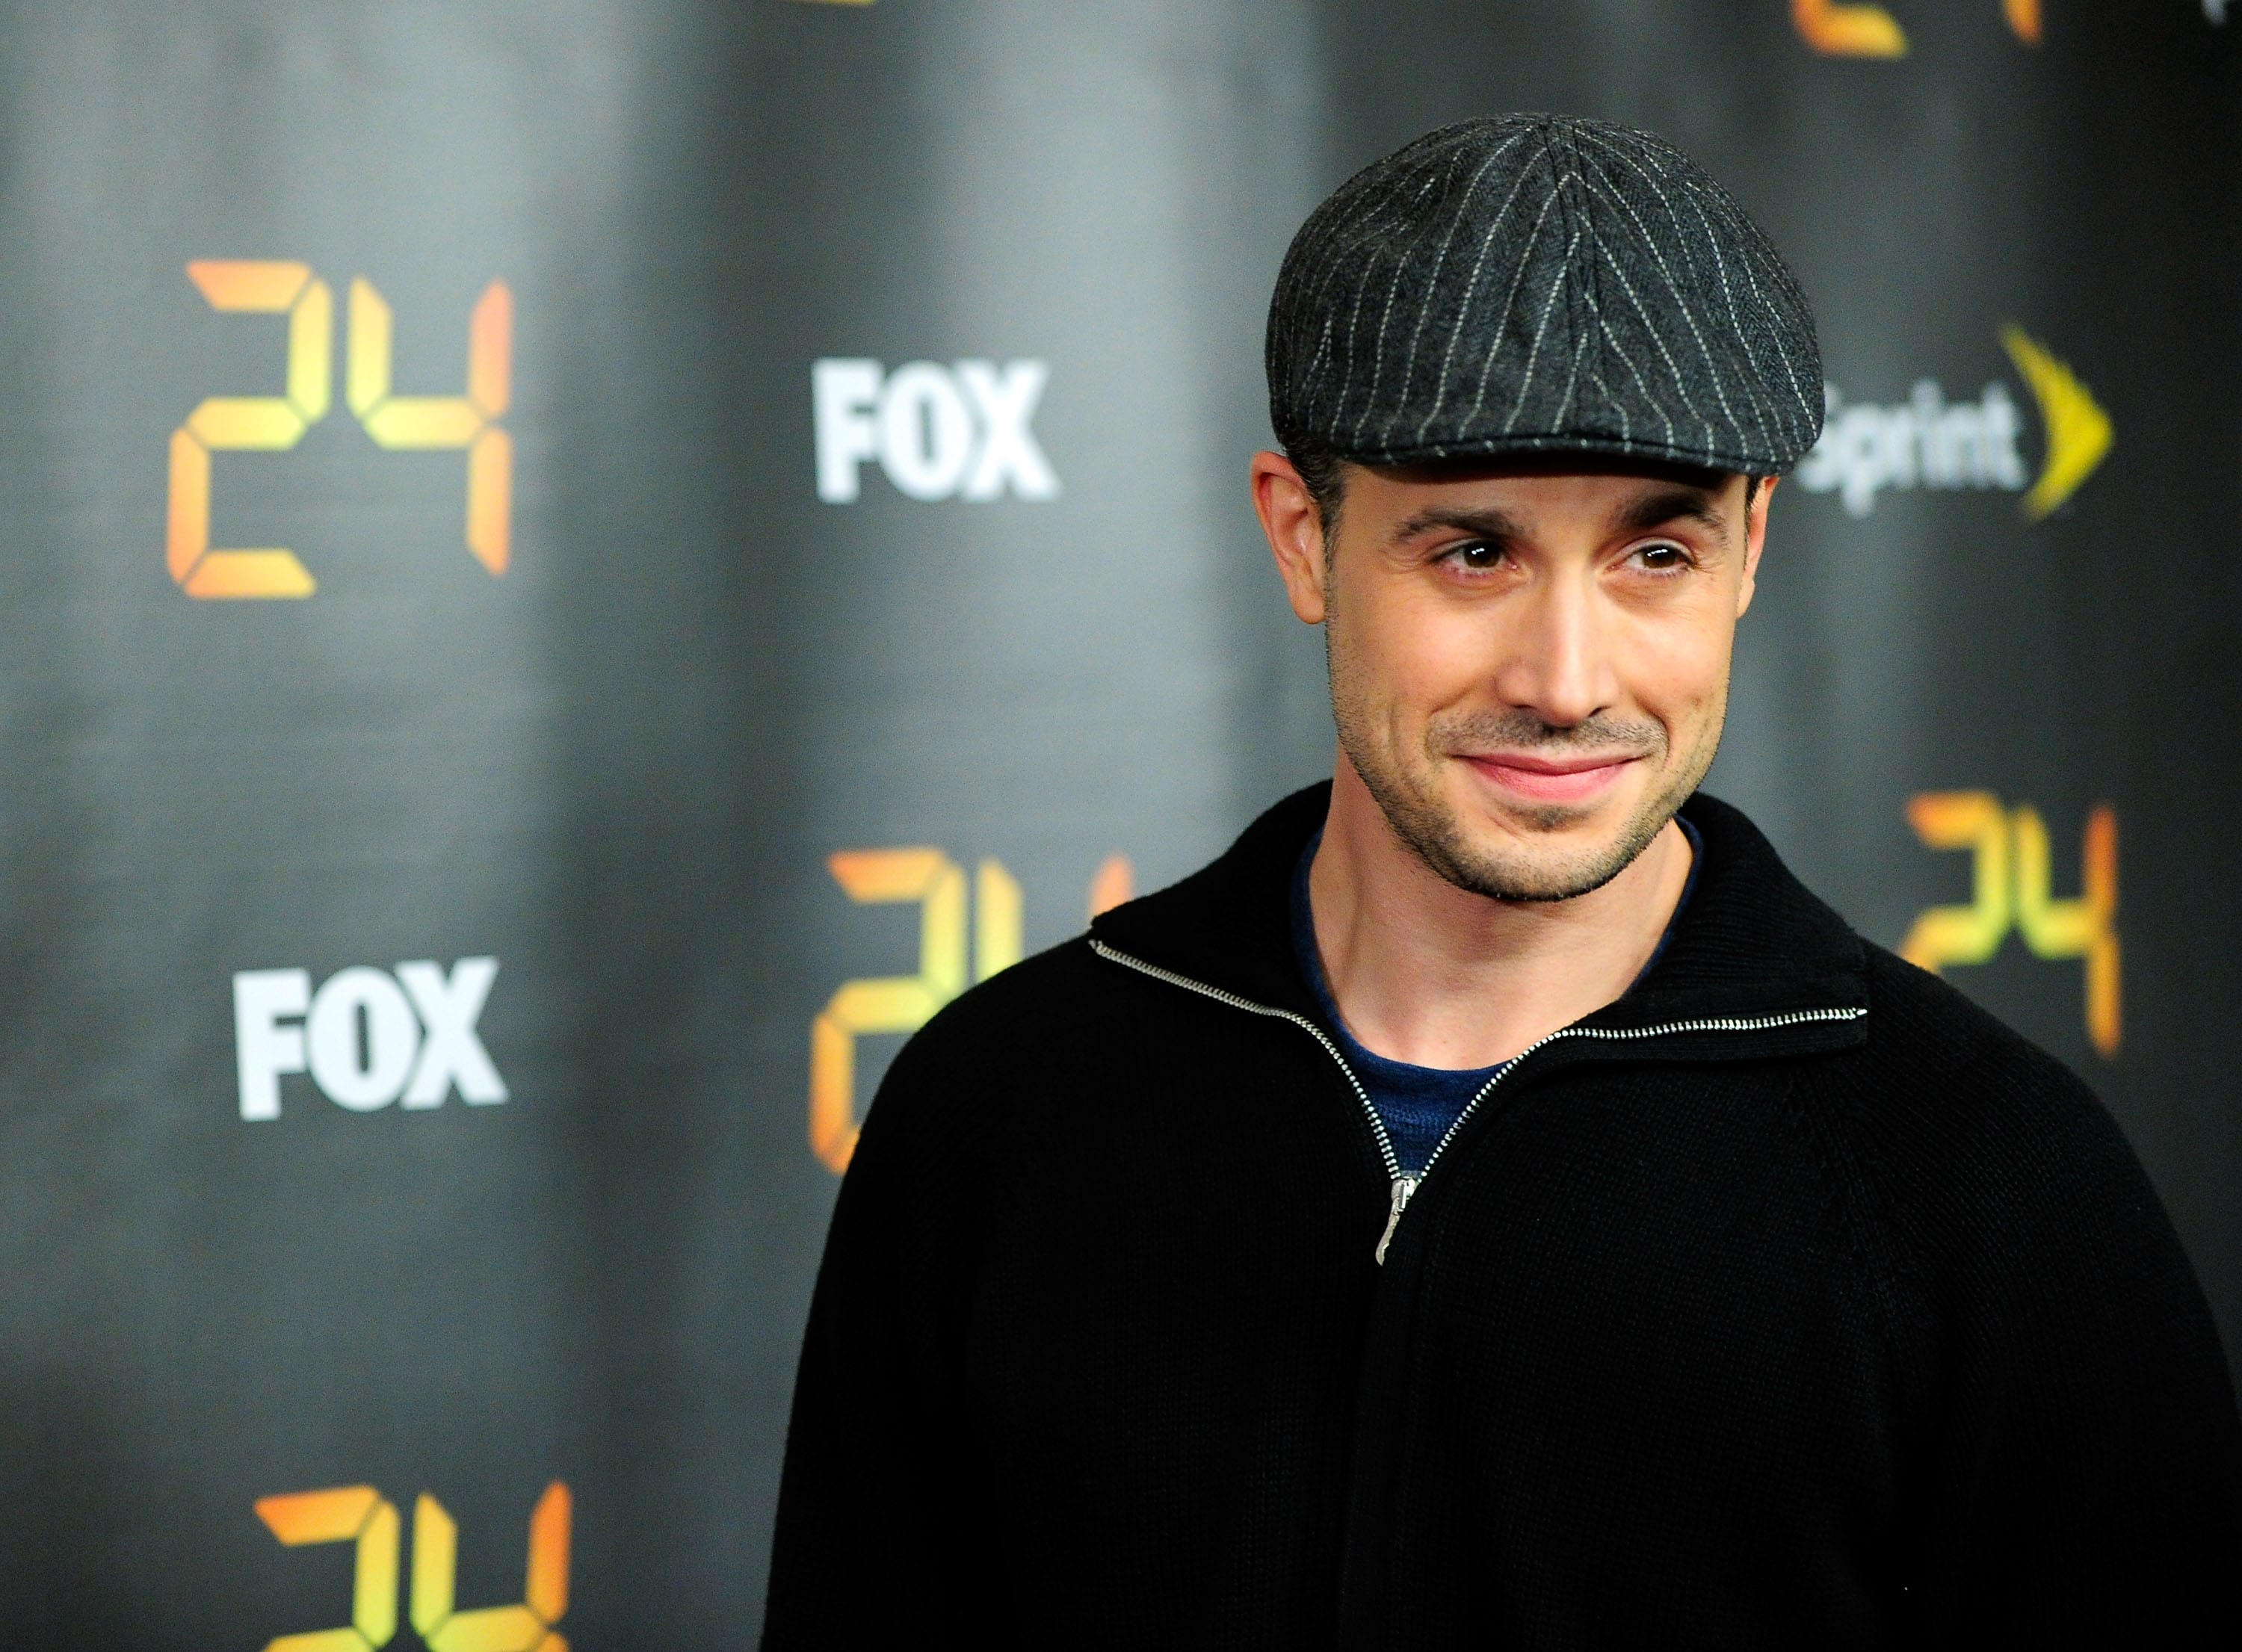 Freddie Prinze Jr. Wallpapers hd